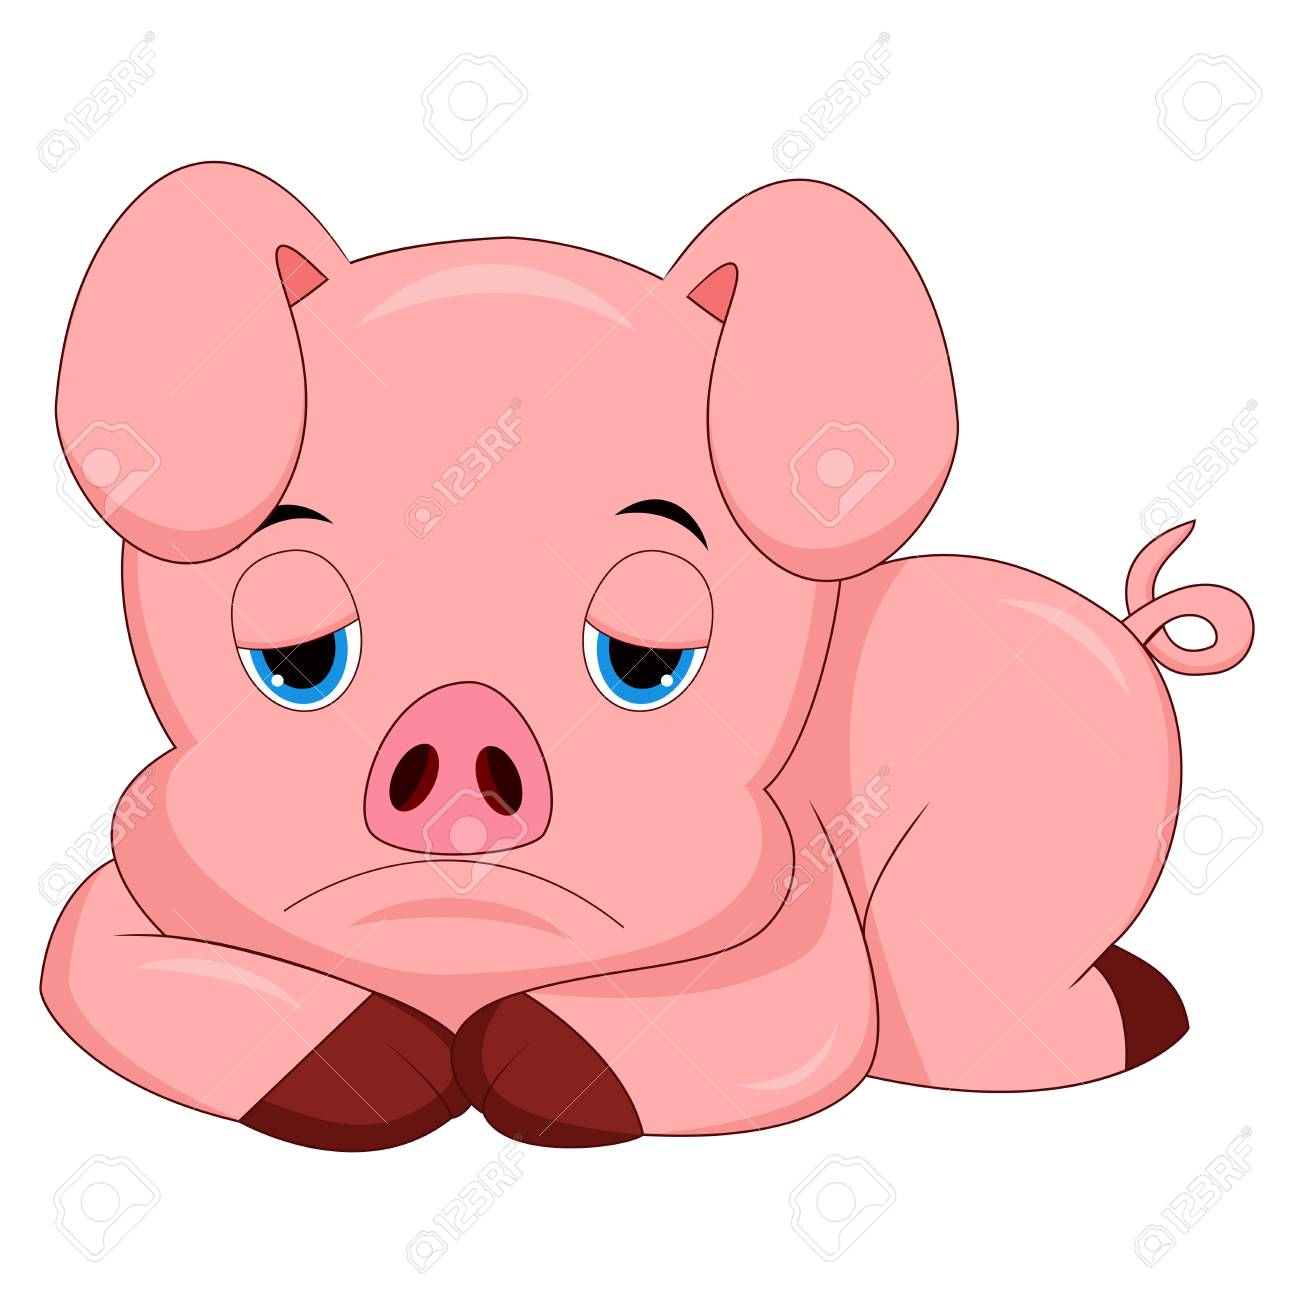 Free Animated Pigs Pictures, Download Free Clip Art, Free Clip Art on  Clipart Library